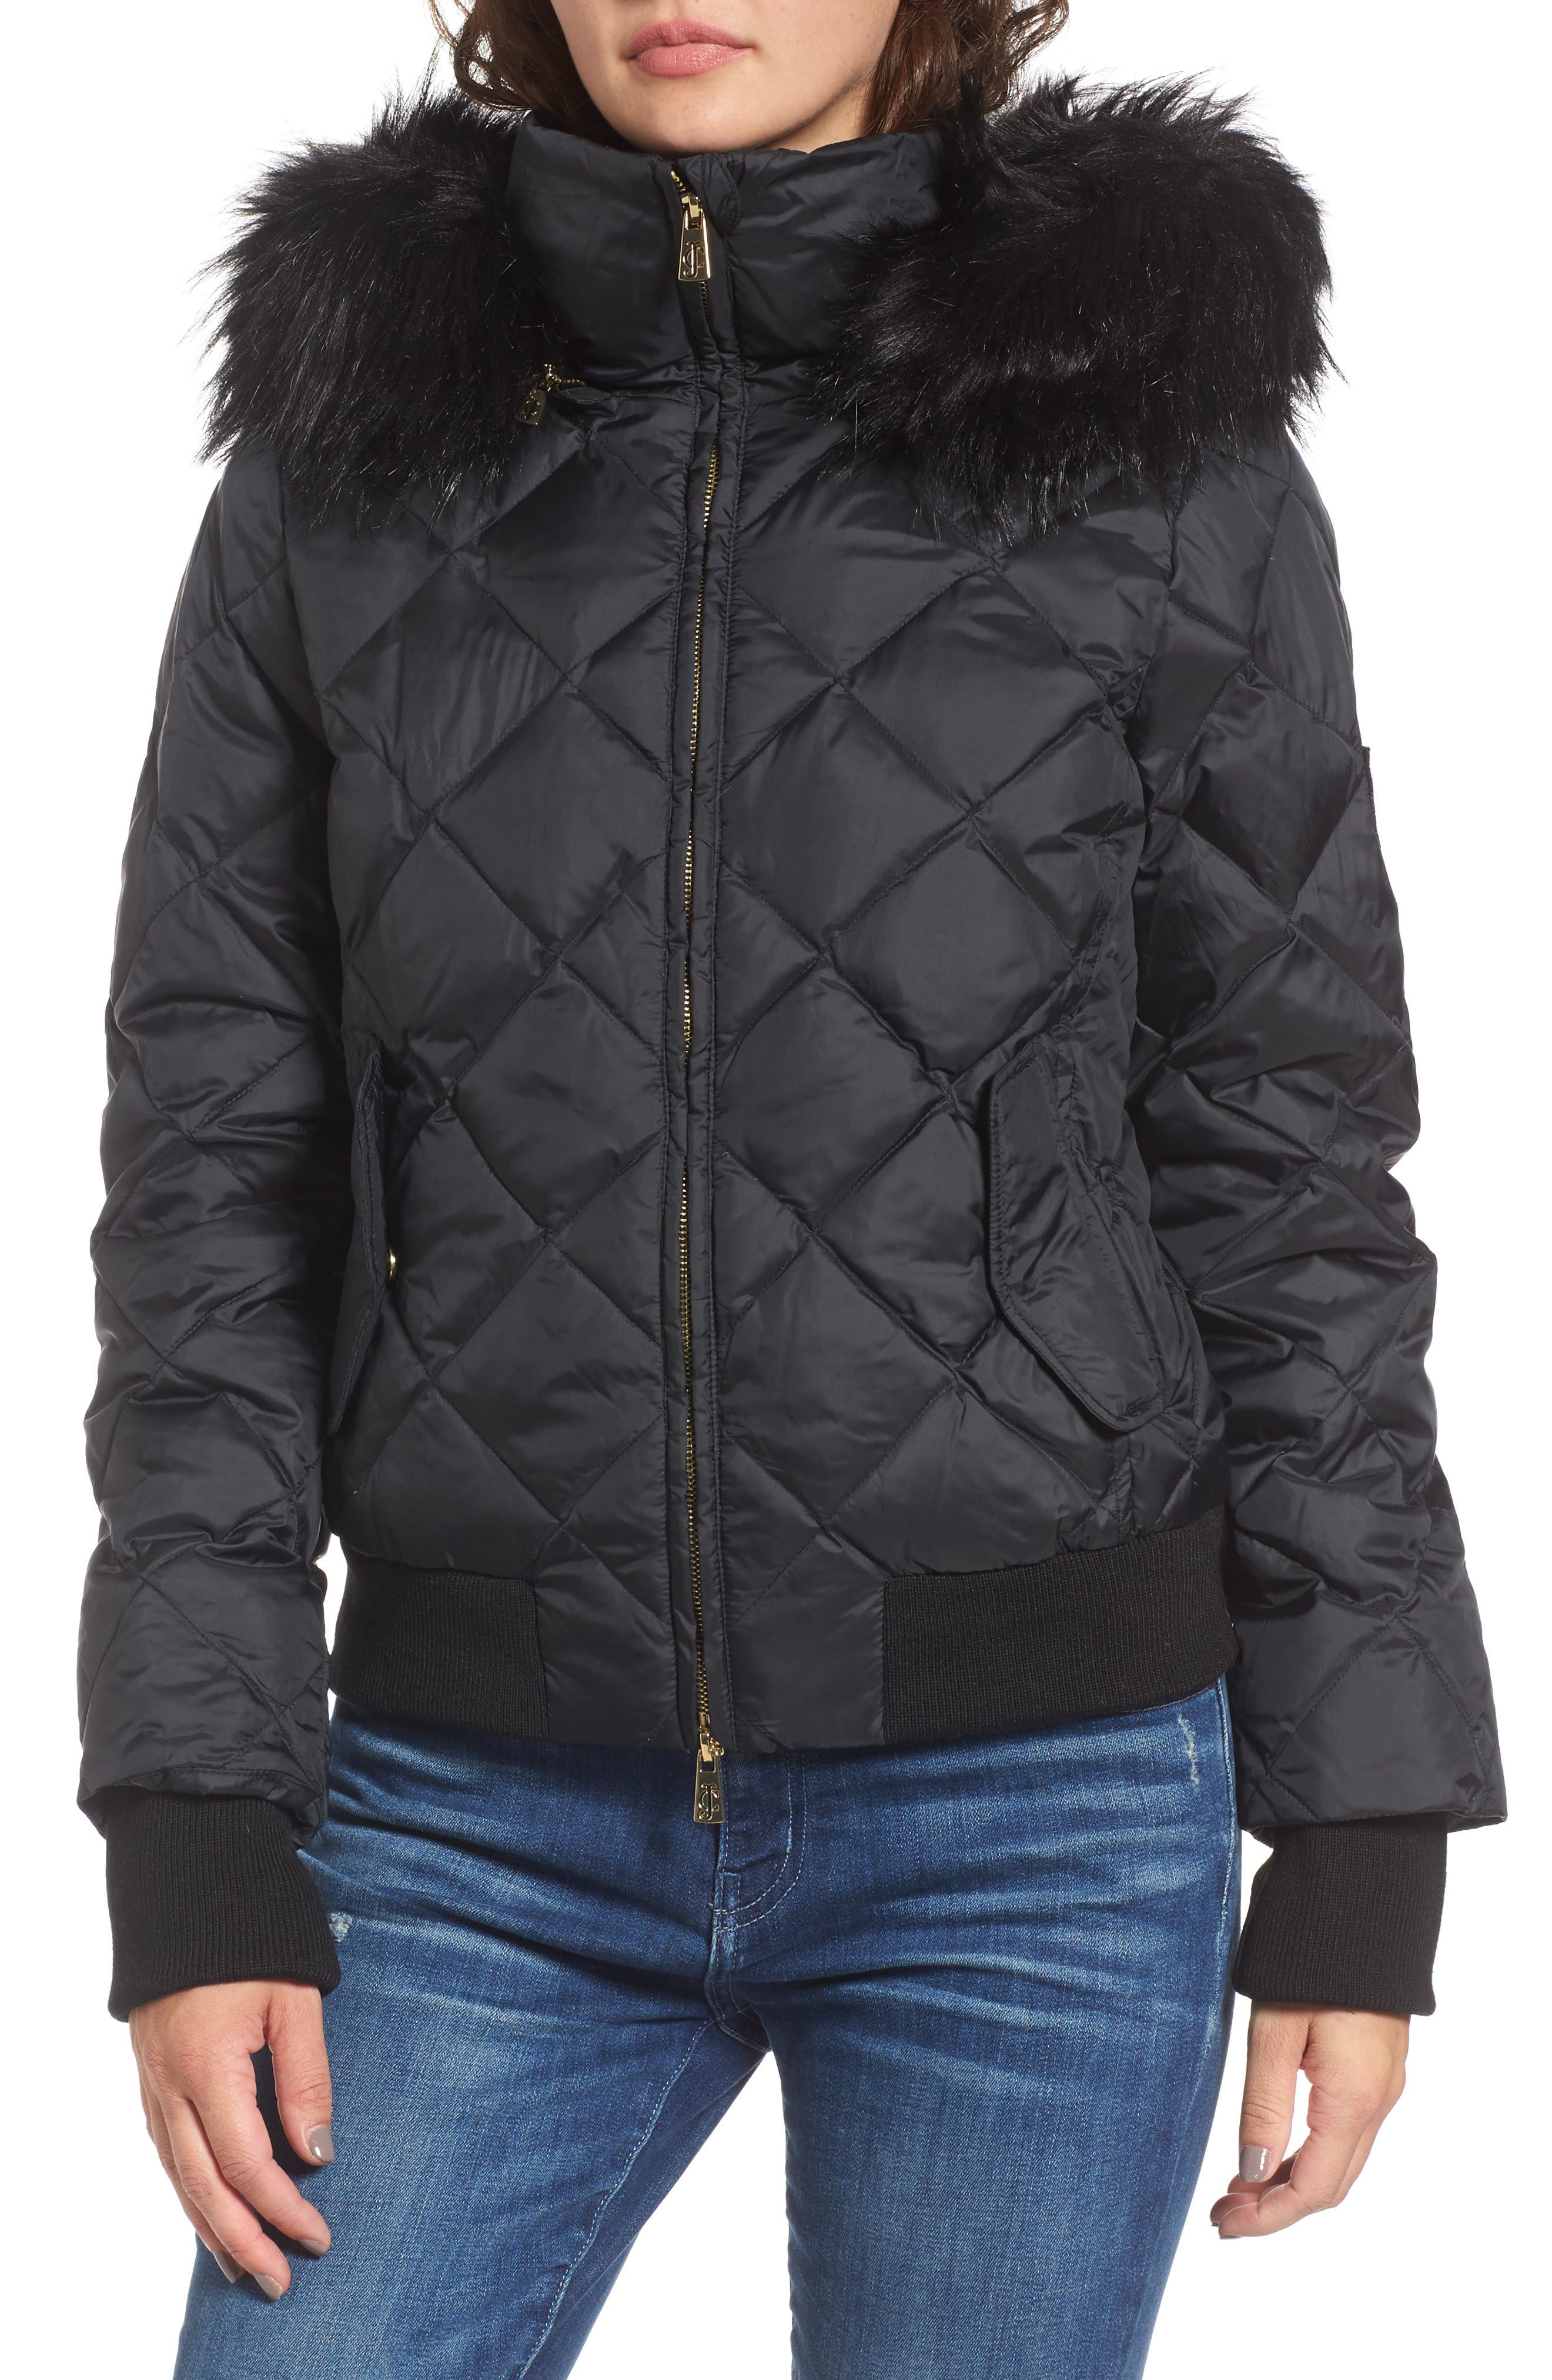 Hooded Puffer Jacket with Faux Fur Trim,                             Alternate thumbnail 4, color,                             009